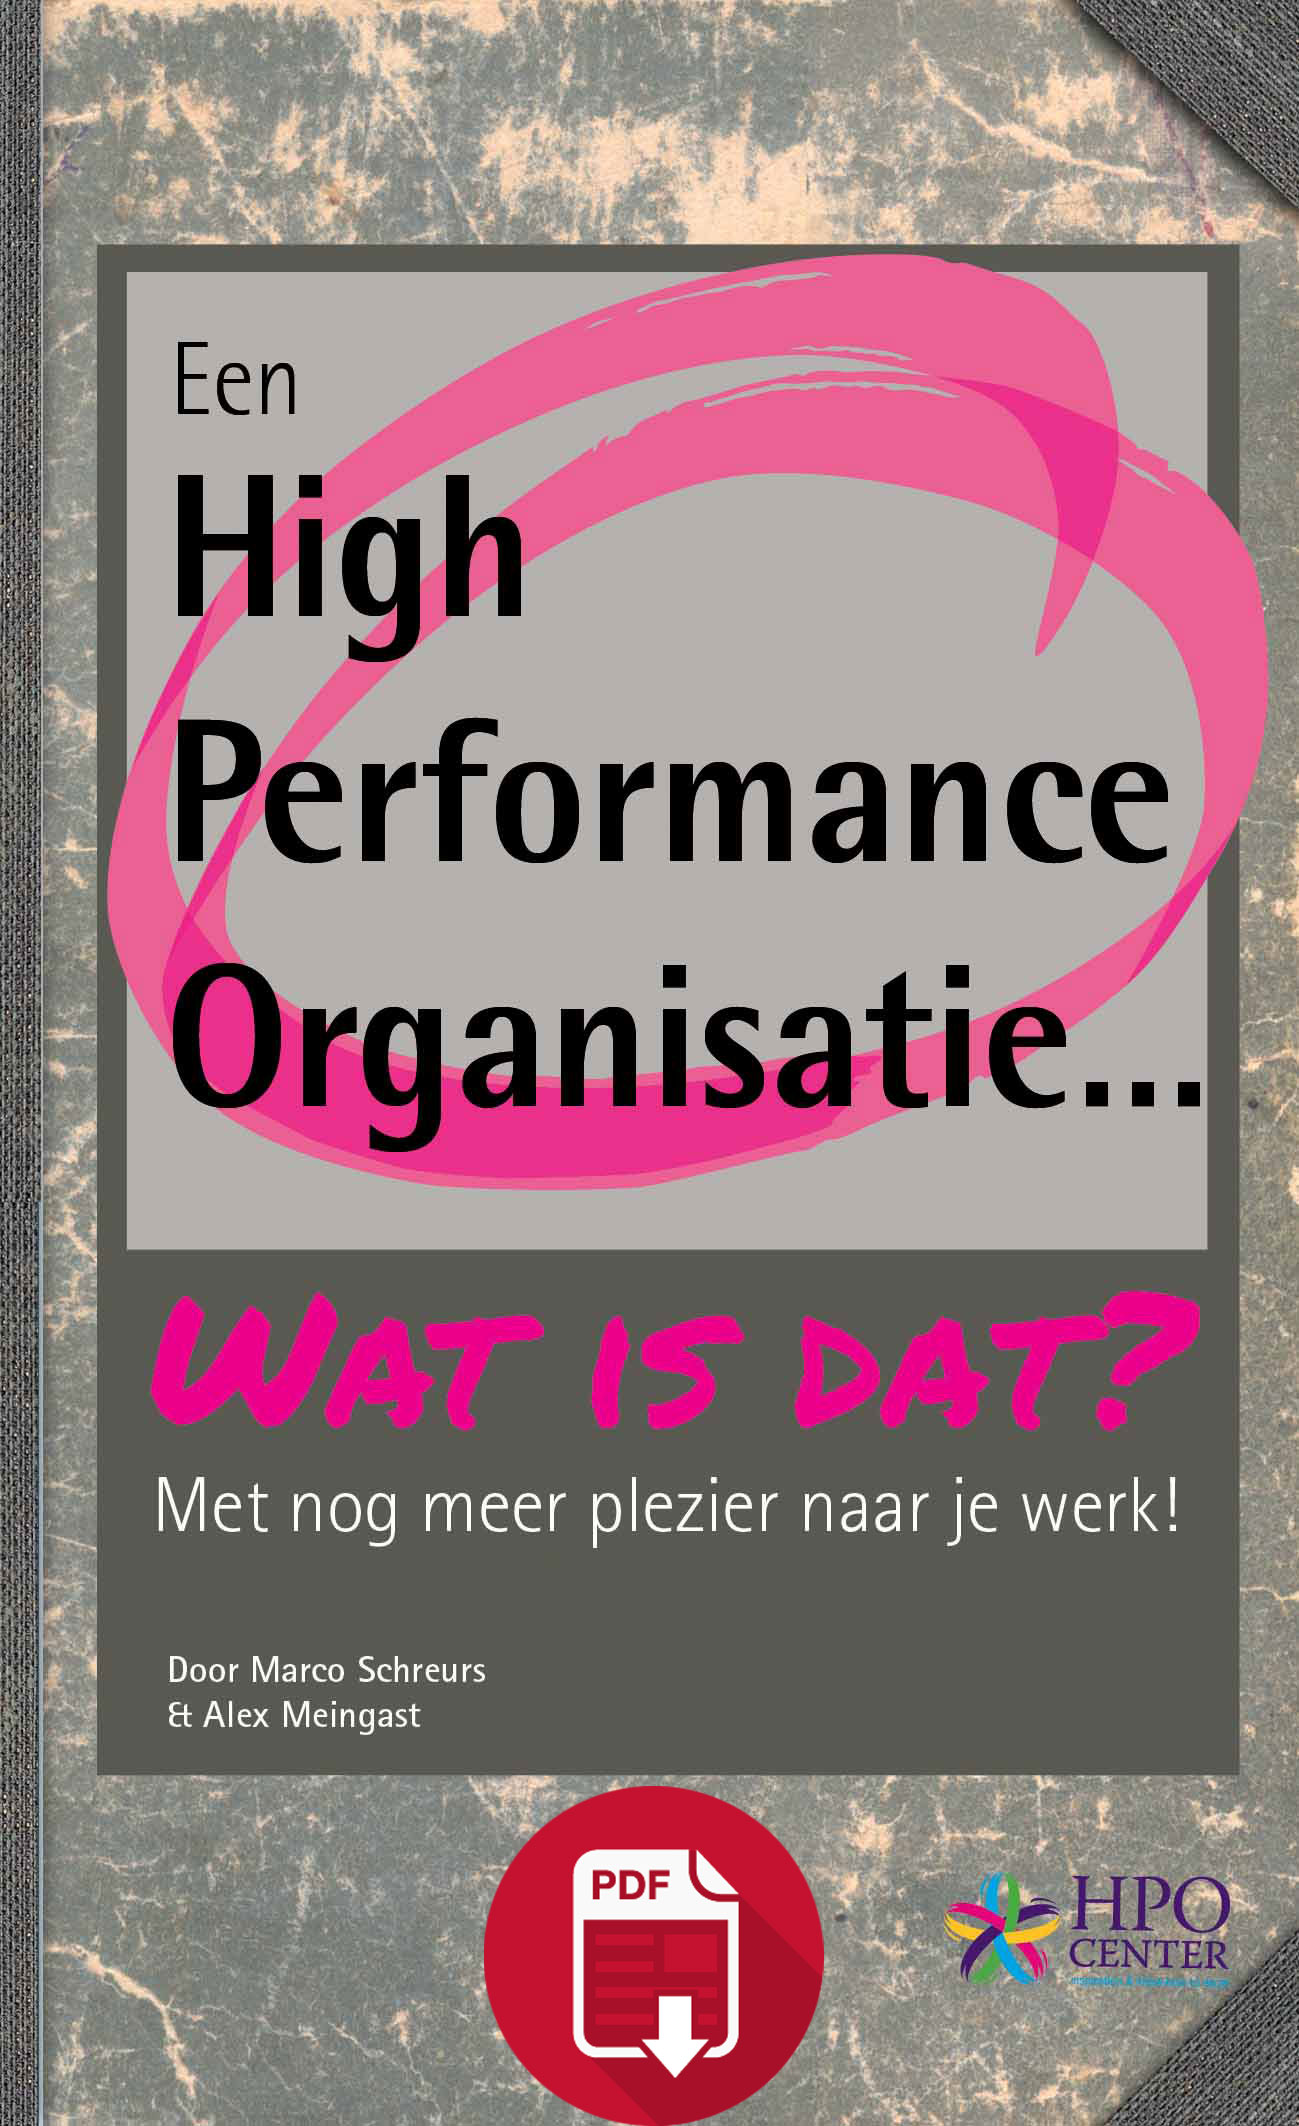 Een High Performance Organisatie...Wat is dat?